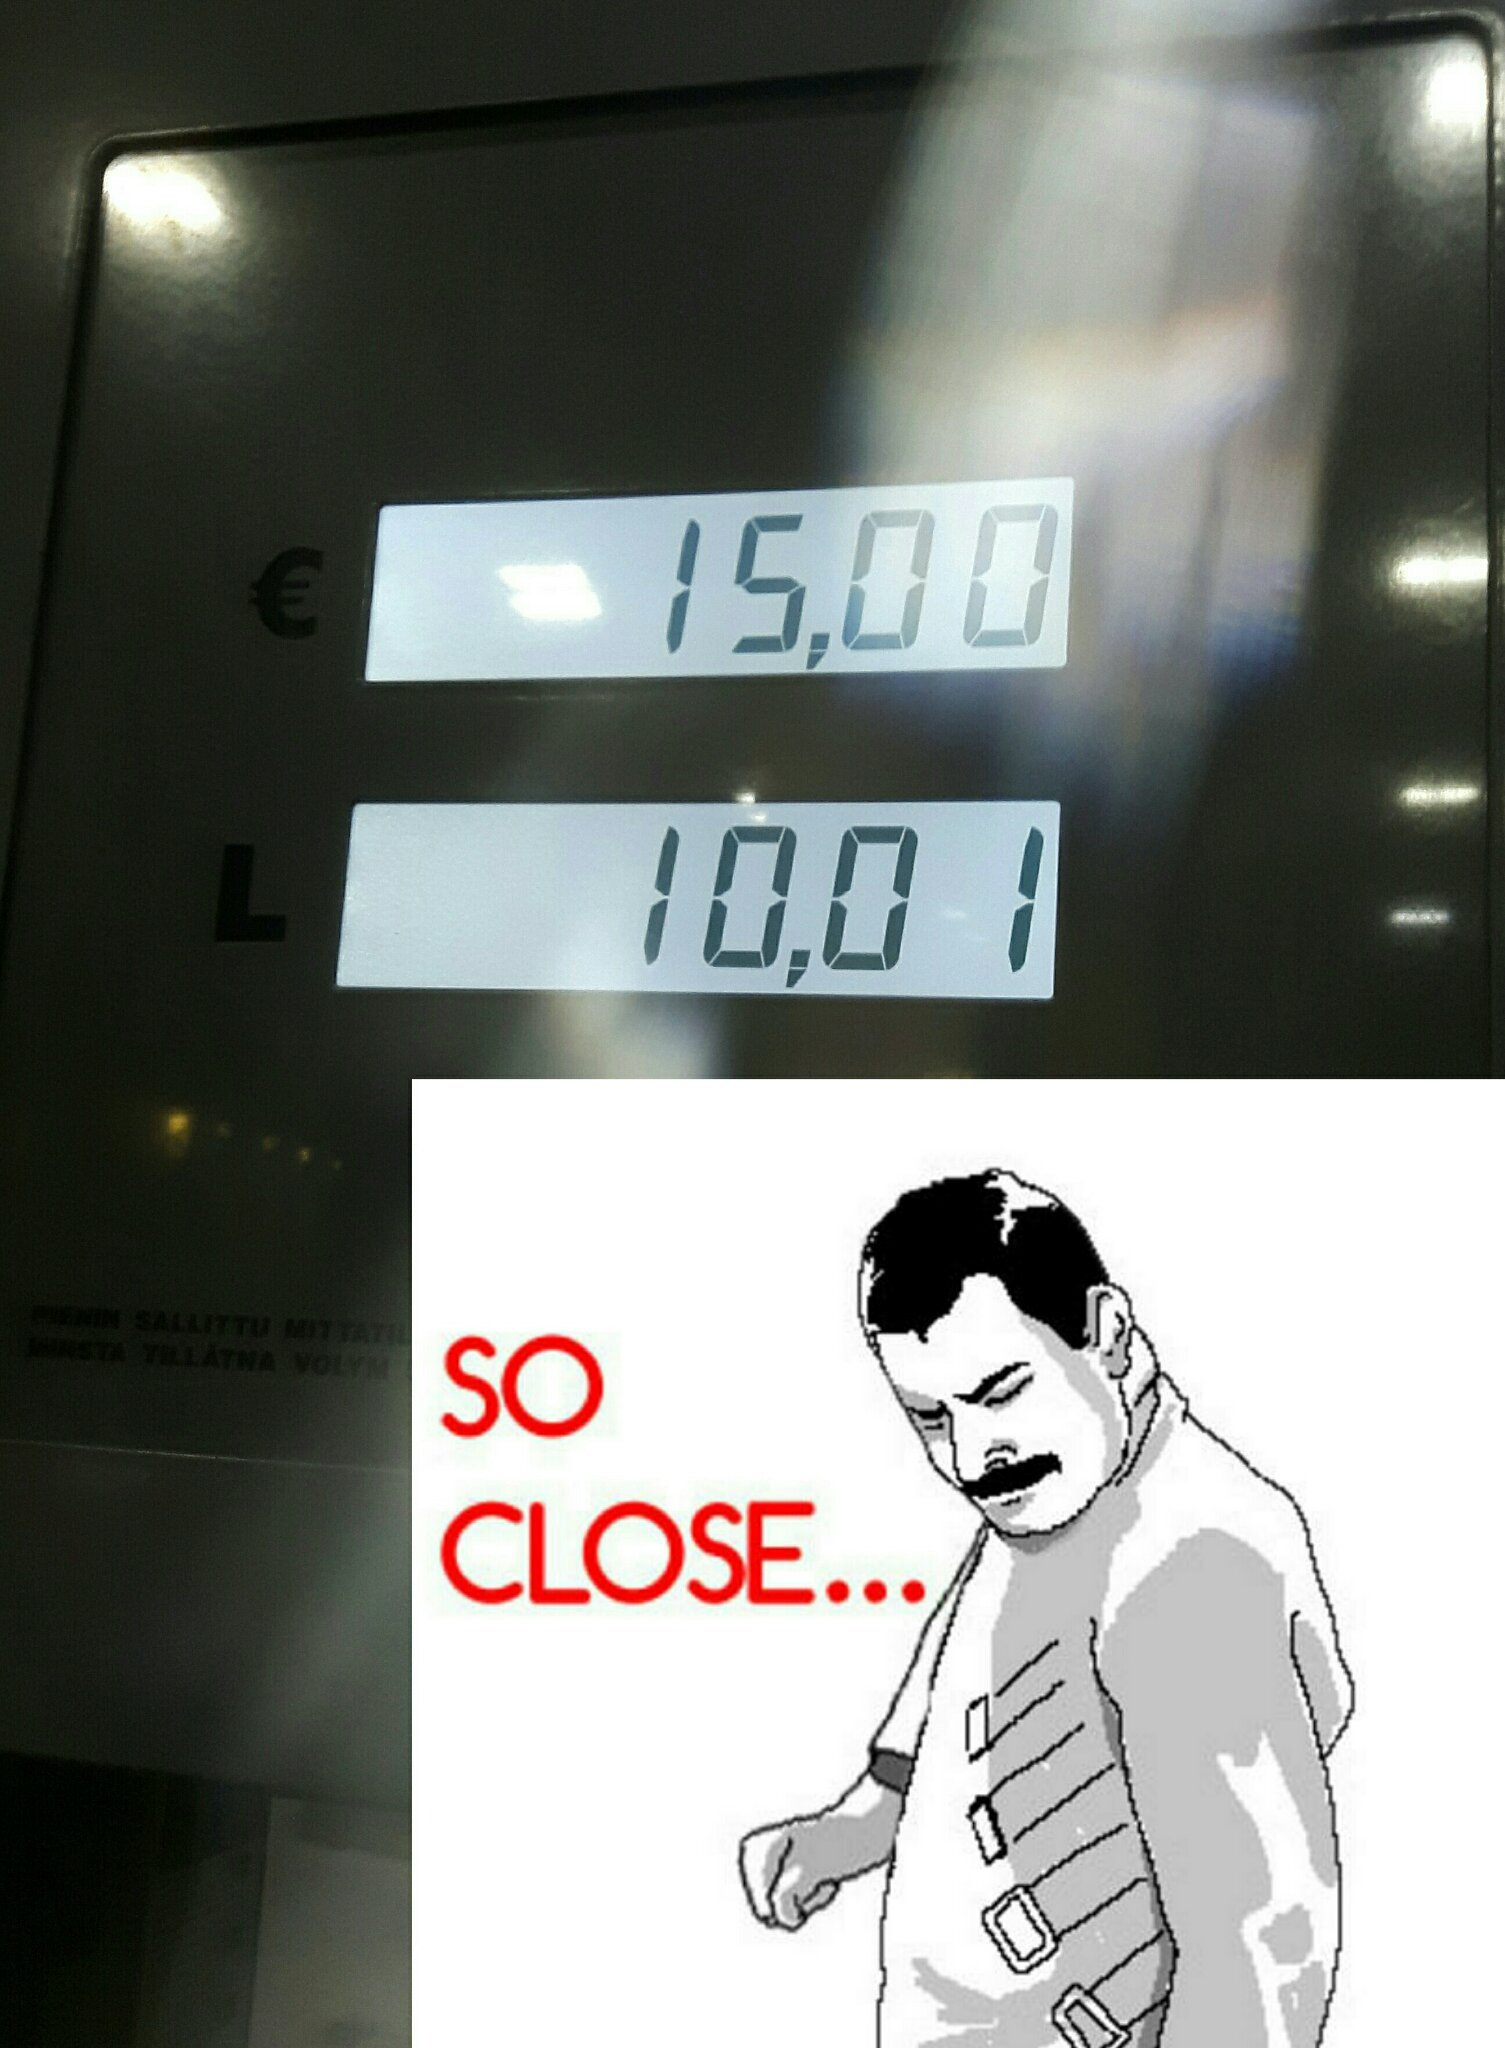 Couple of days ago at the gas pump :/ hurts my ocd - meme